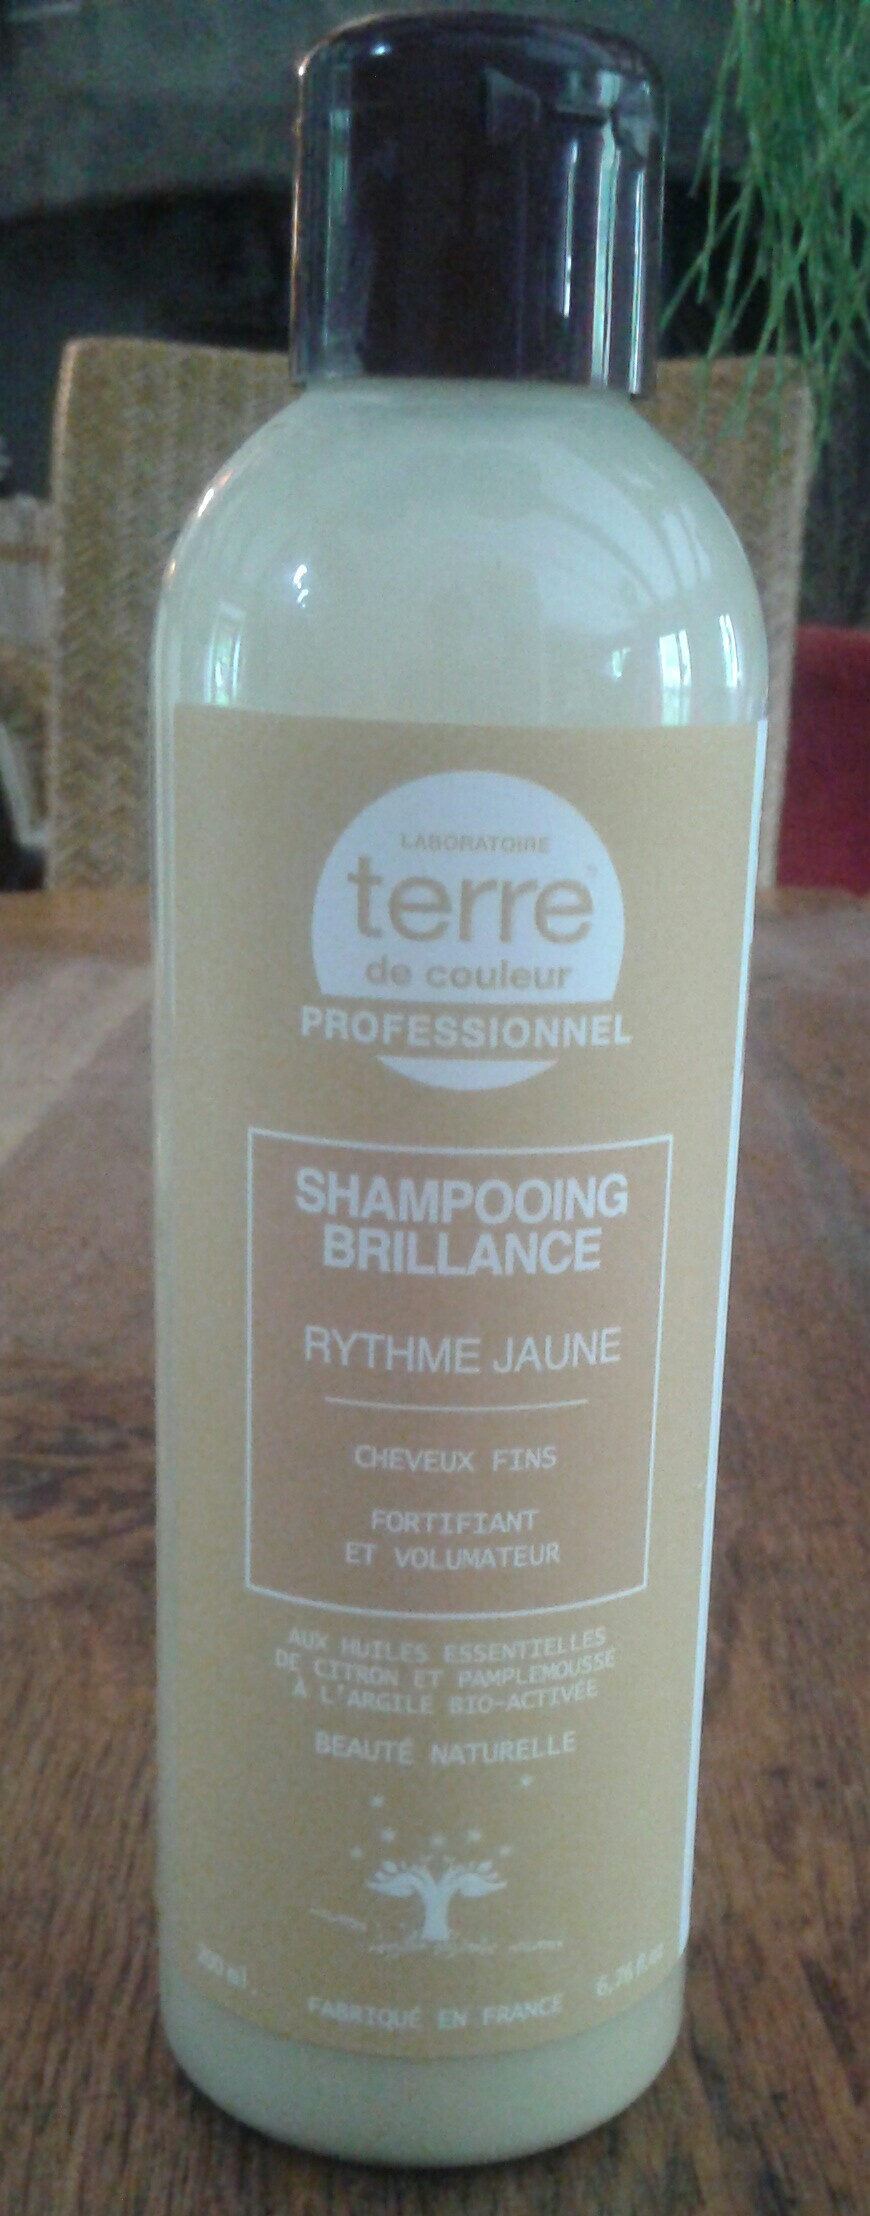 shampooing brillance - Product - fr